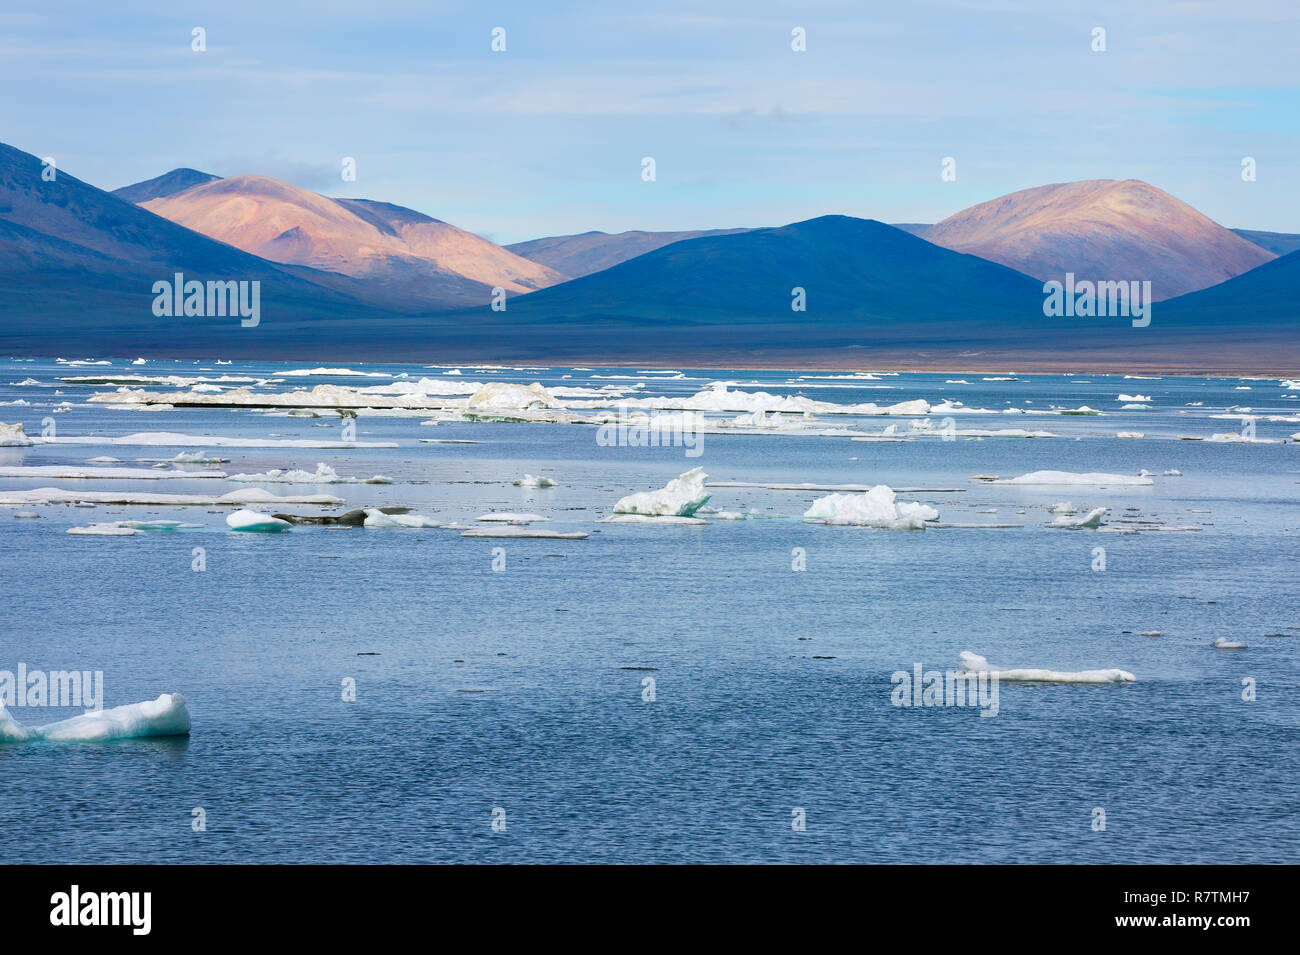 Ice floes off Wrangel Island, a UNESCO World Heritage Site, Wrangel Island, Far Eastern Federal District, Russia - Stock Image